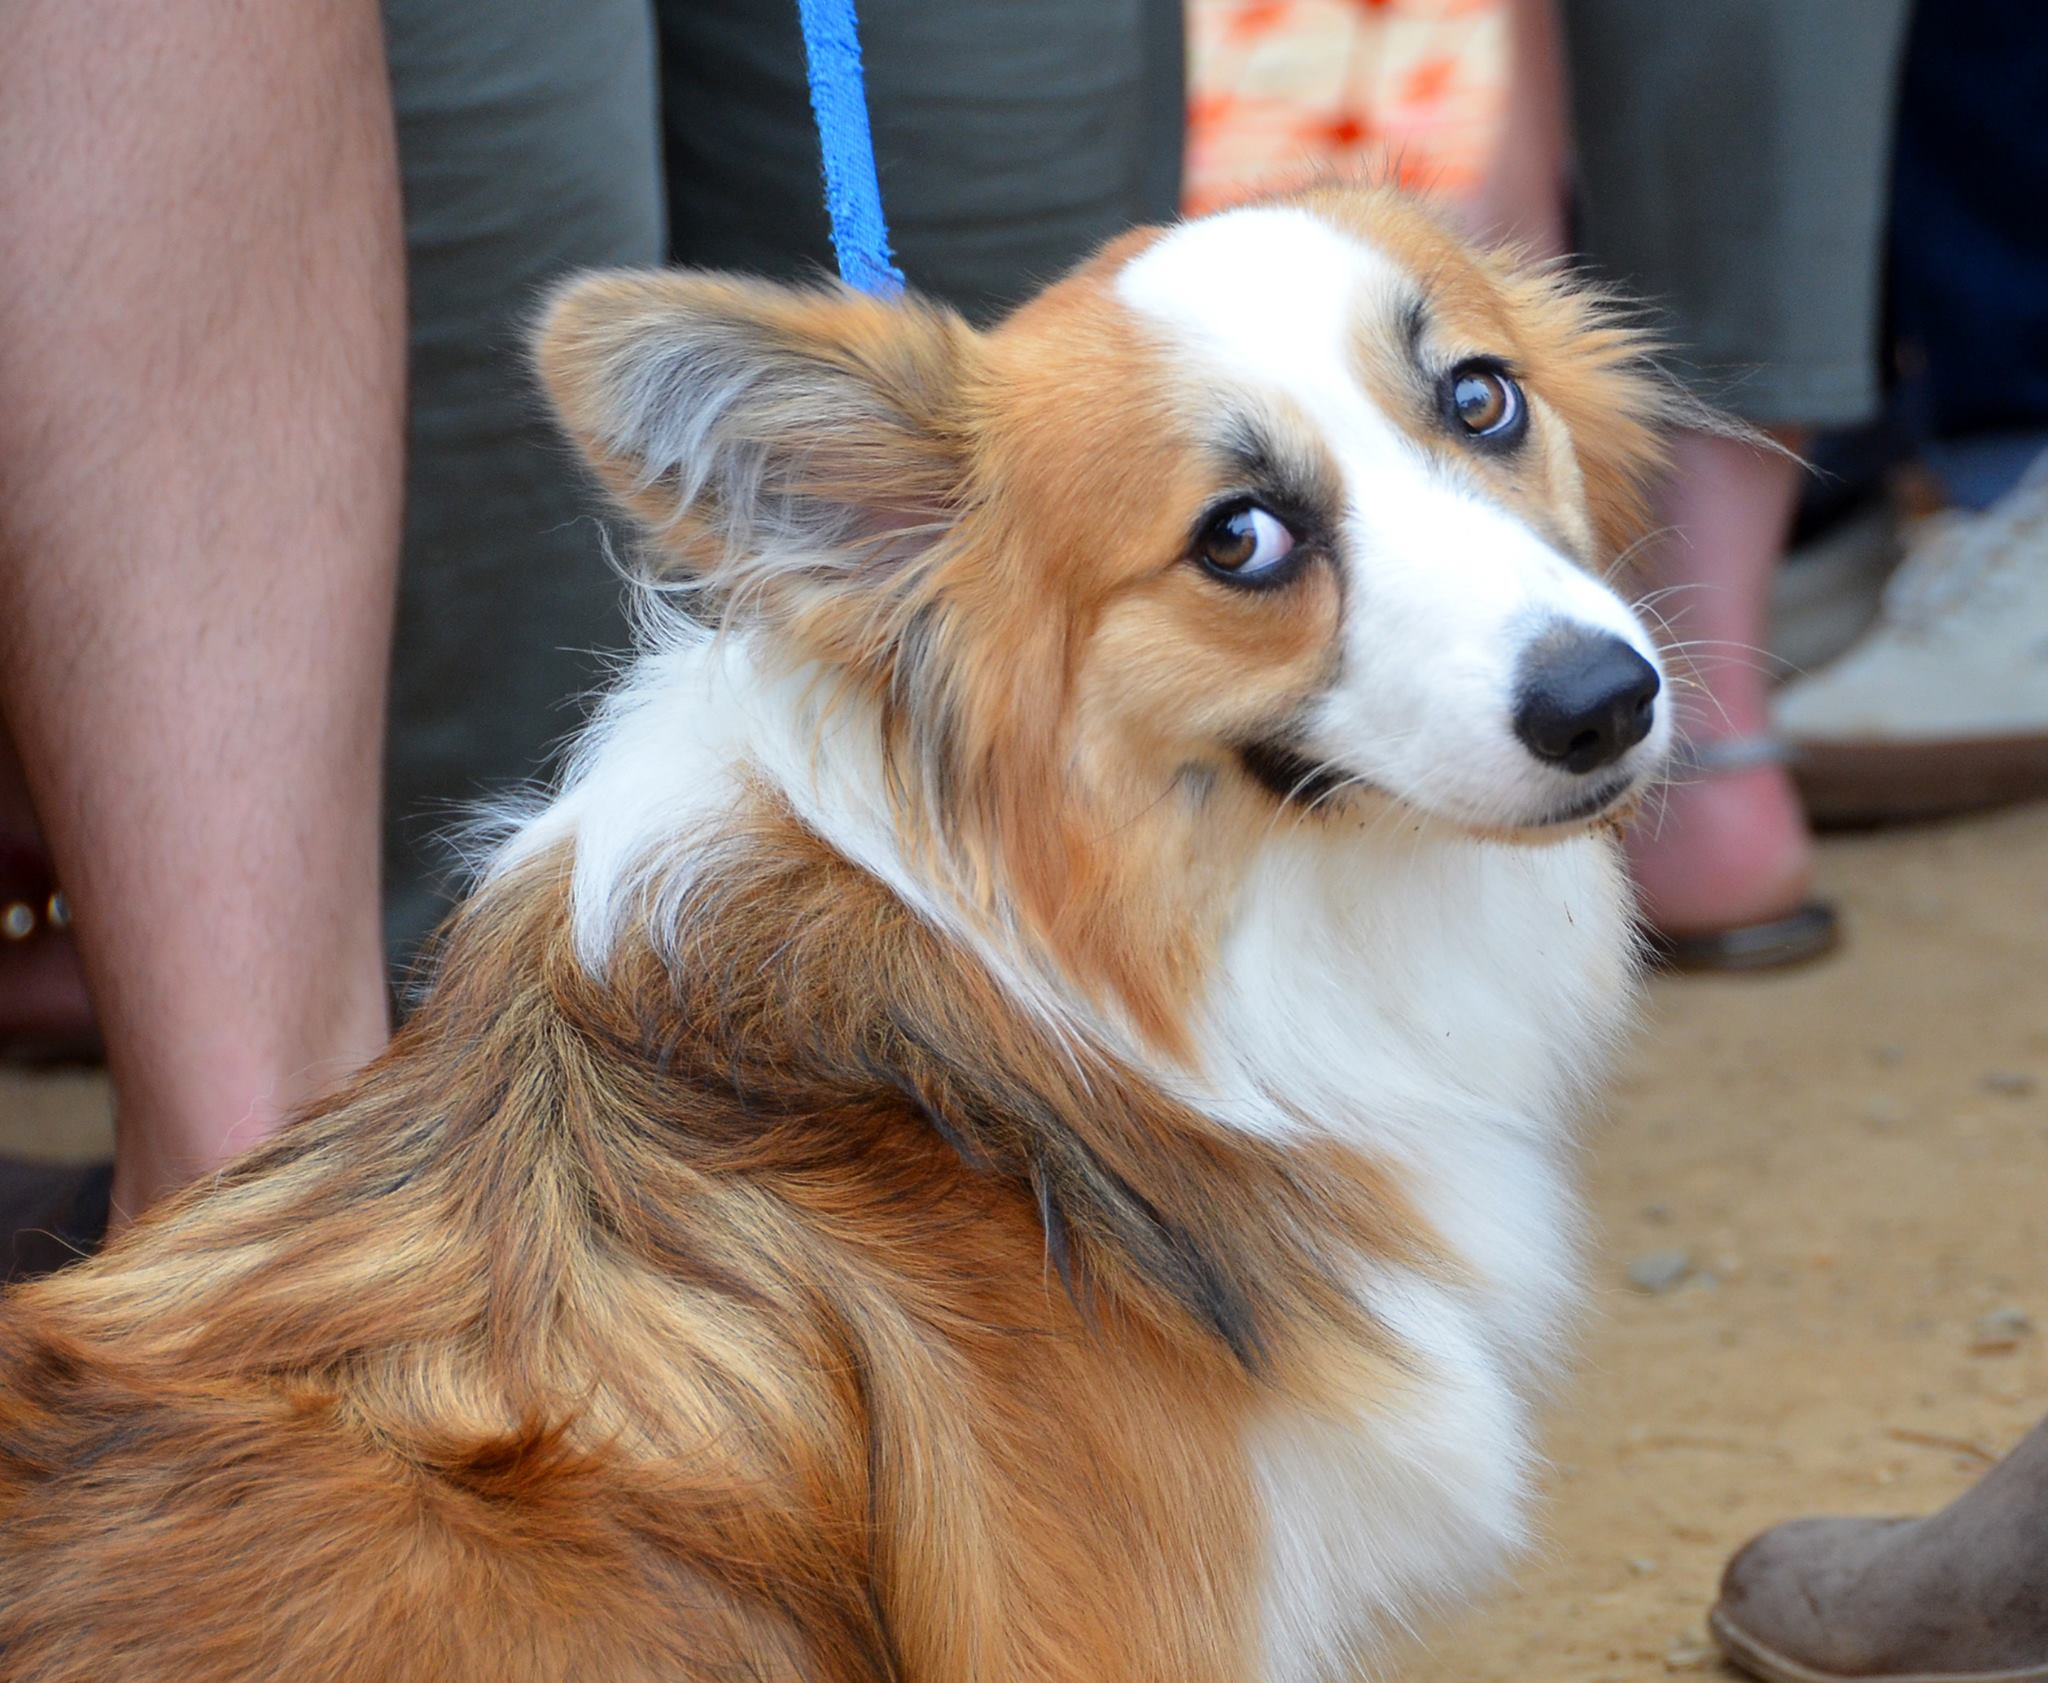 "There are few things in life we love more than a bunch of dogs all in one place that we can go nutty over! So naturally, Derpin' in DC: Corgtoberfest was right up our alley! Hundreds of stumpy-legged fluff monsters and their humans descended on{ }Tysons Biergarten for the fourth annual Corgi meetup, though it was an all-inclusive event with many other breeds making an appearance as well. There was a costume contest for the dogs and stein-drinking competitions for their two-legged counterparts, followed by several heats of corgi races. Boy can those stumpy little furballs run! You may see some familiar faces as several ""insta stars"" were present, including Navy, Moogle, Waffles, Jasper and Biscuit. Plus, our friends from We The Dogs DC were repping! (Image: Randy Bachand Photography)"